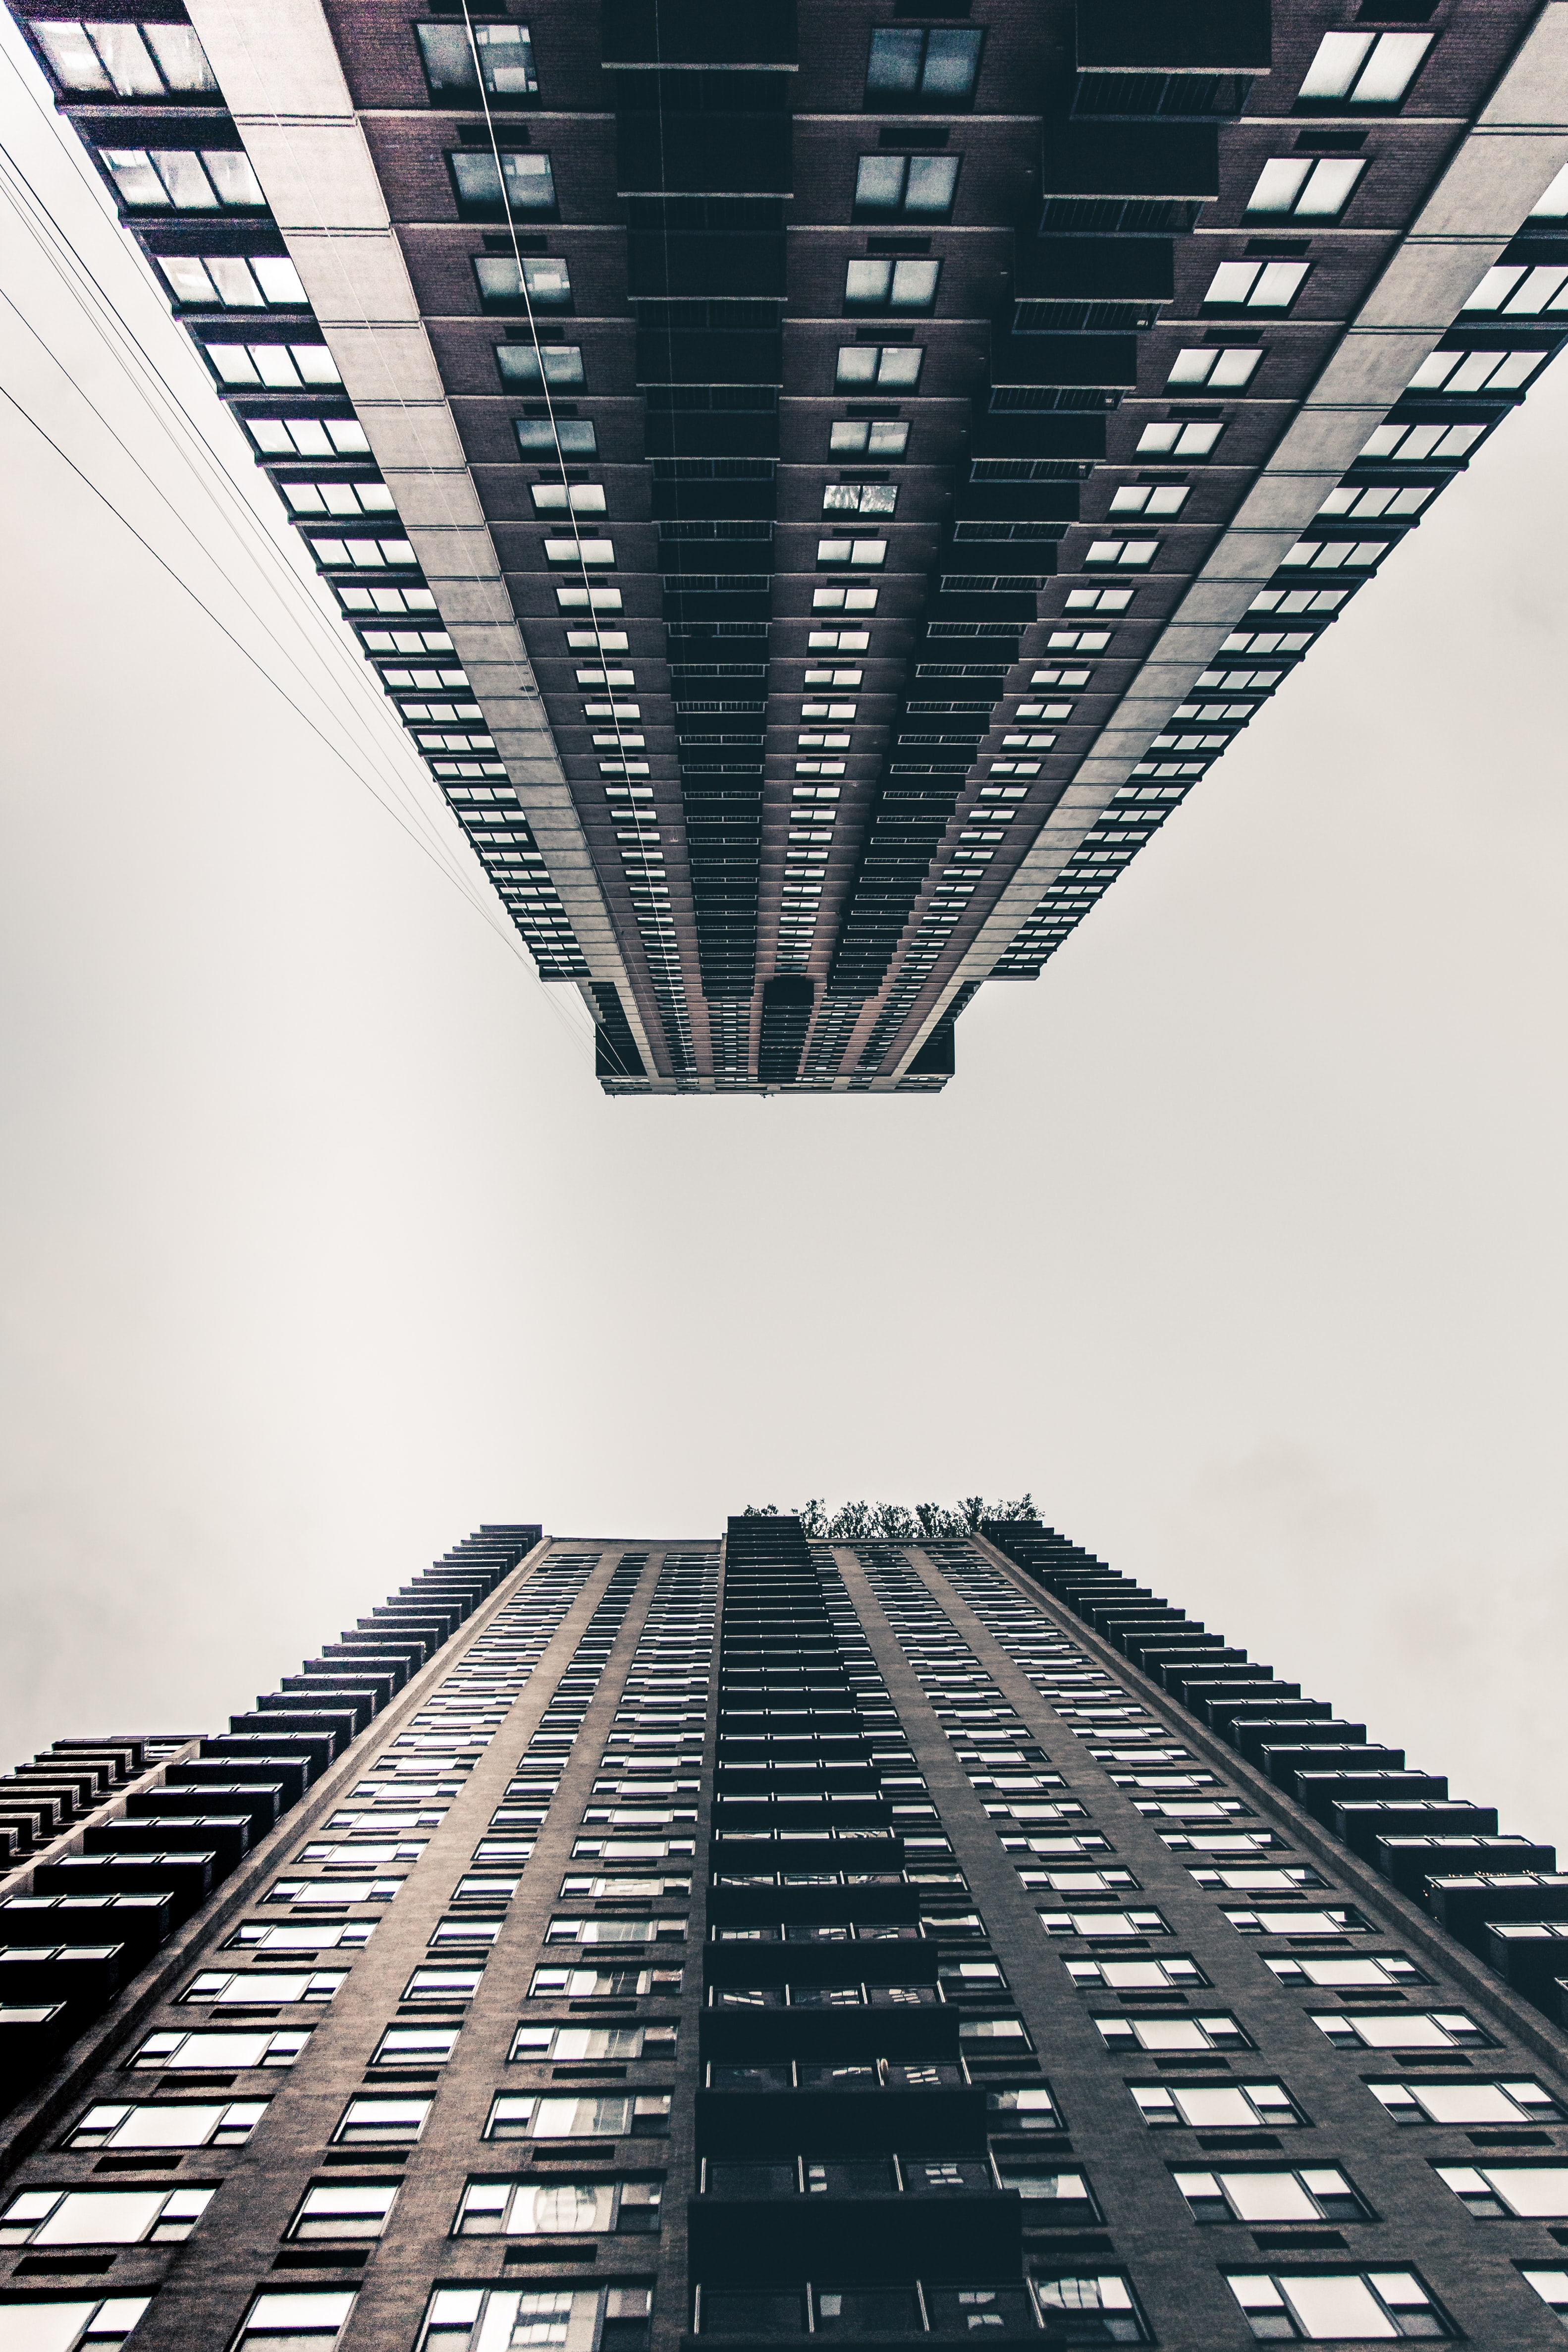 A low-angle shot of two tall apartment buildings in New York under a pale white sky